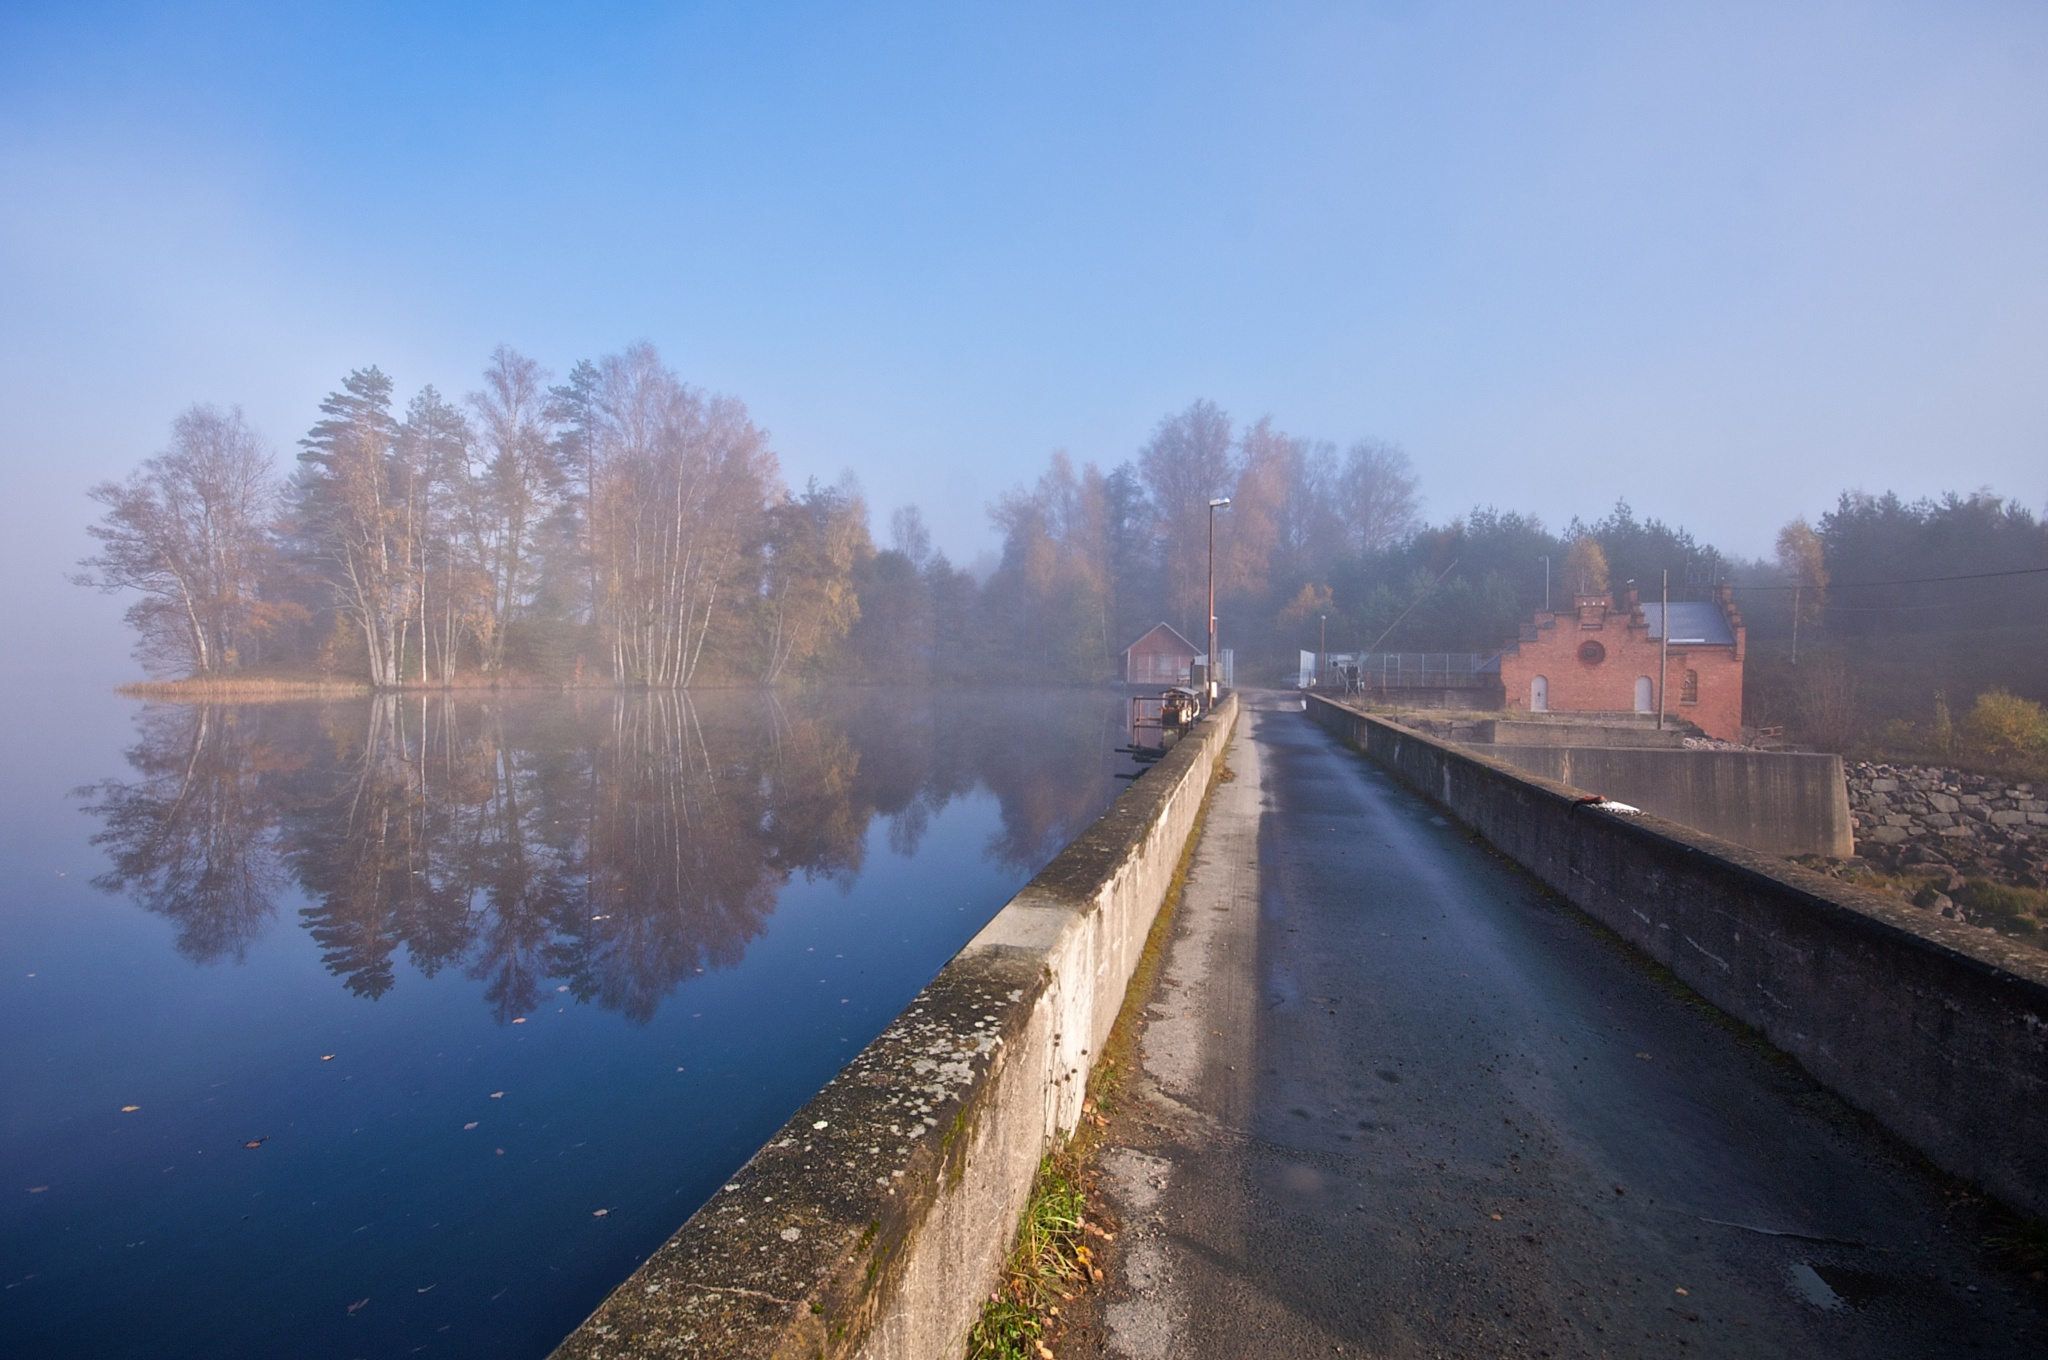 Morning at Hörle Dam. by Tue Romanow